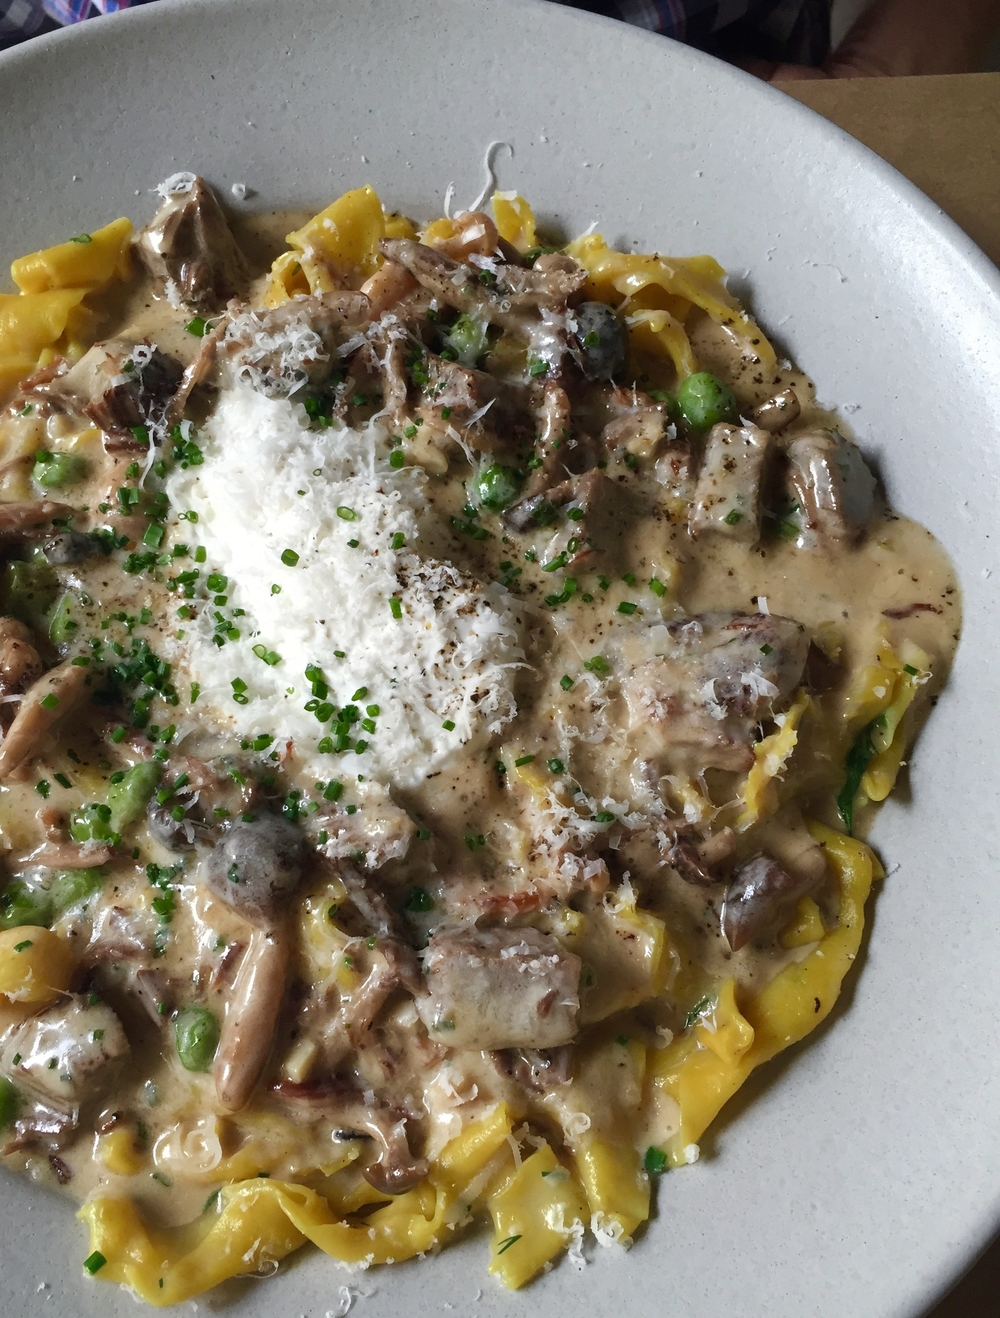 Beef Stroganoff with house-made egg noodles, braised short rib, wild mushrooms, and crème fraîche.